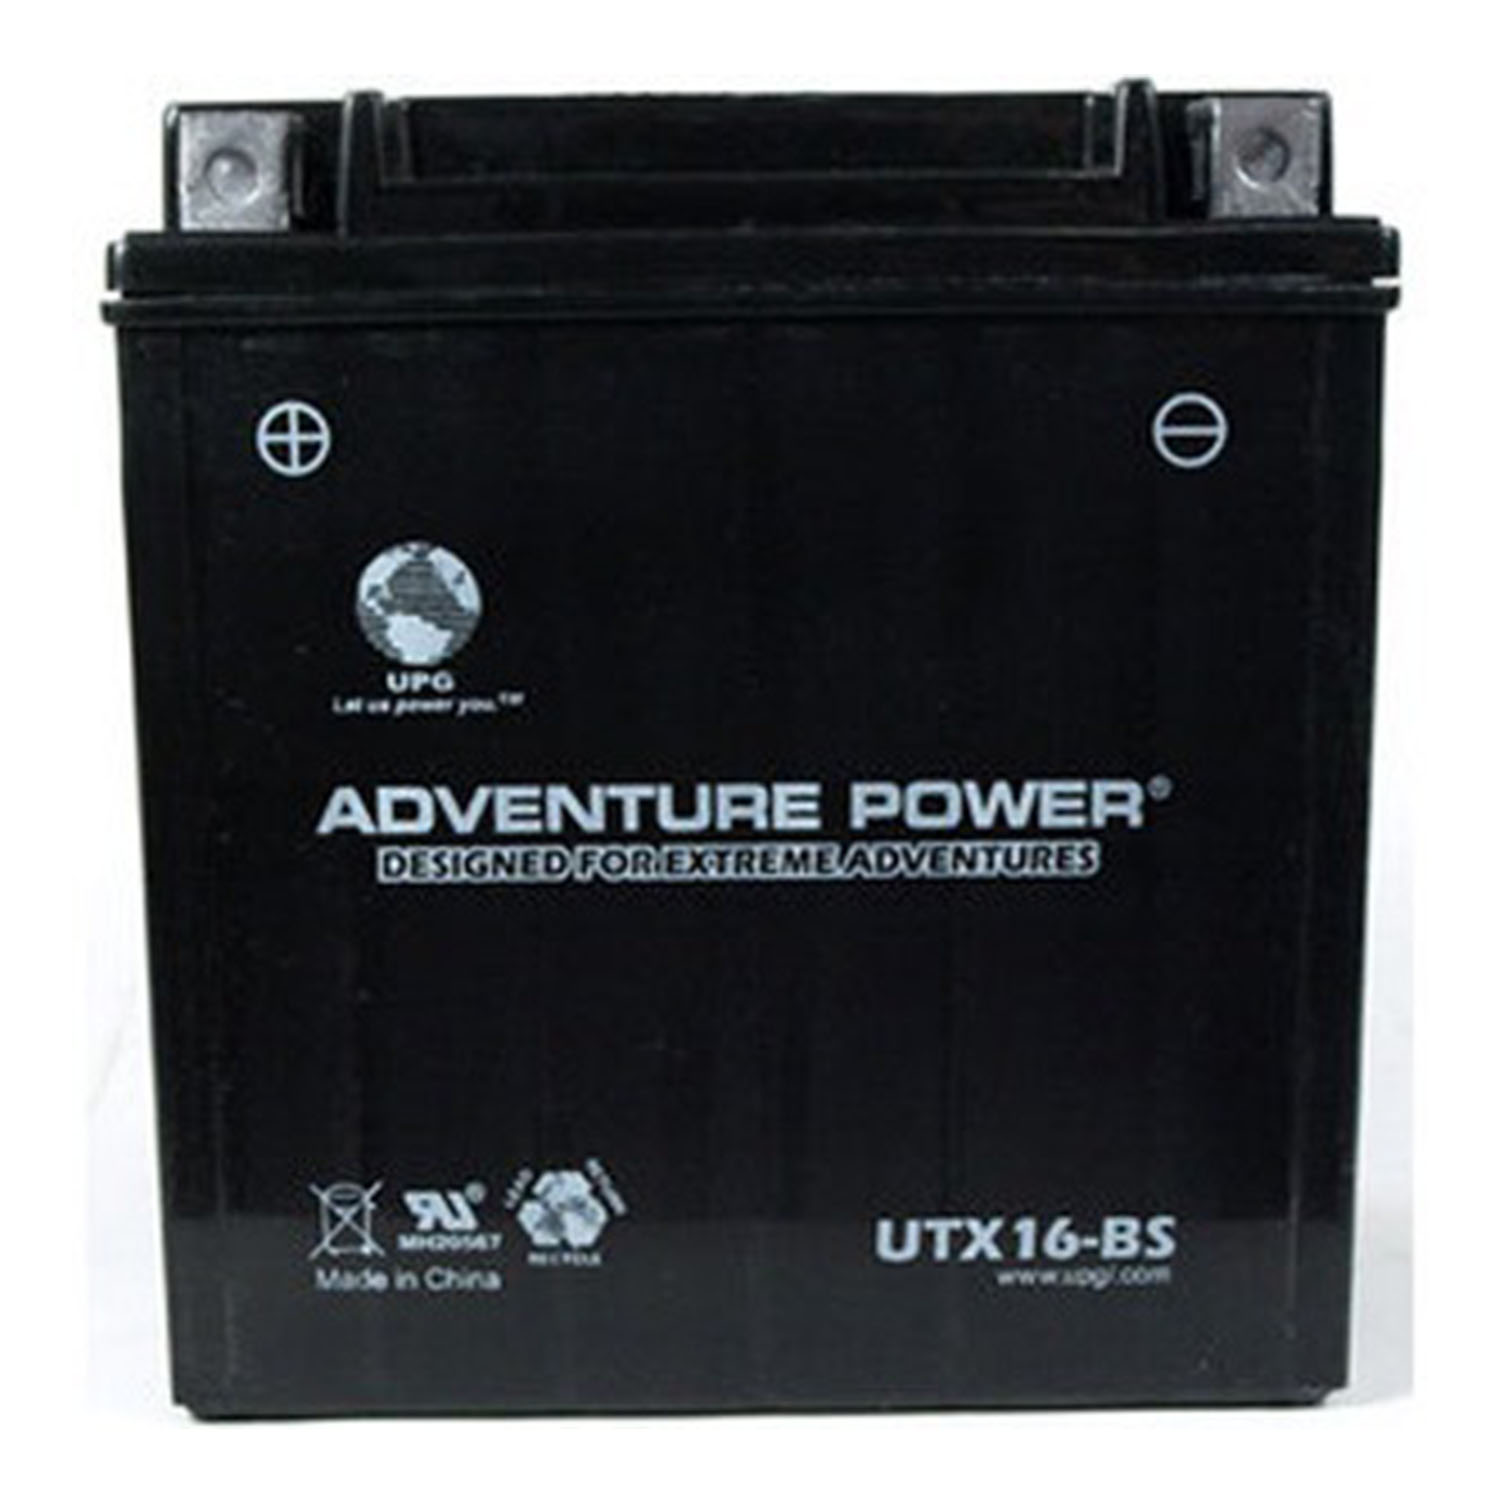 UTX16-BS 12V Battery for Kawasaki VN1700 Voyager, Nomad '09-'14